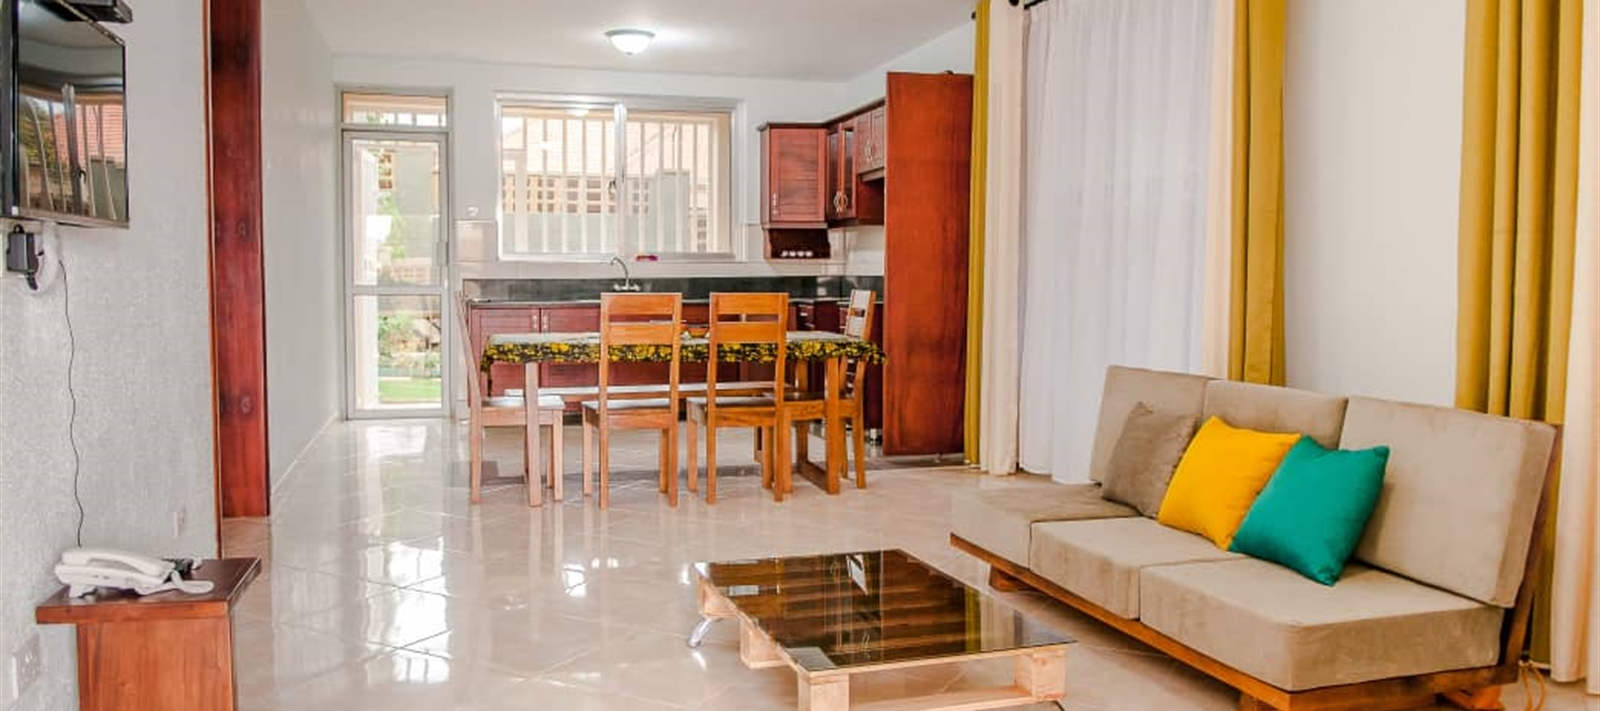 Furnished apartment for rent in Kiwatule